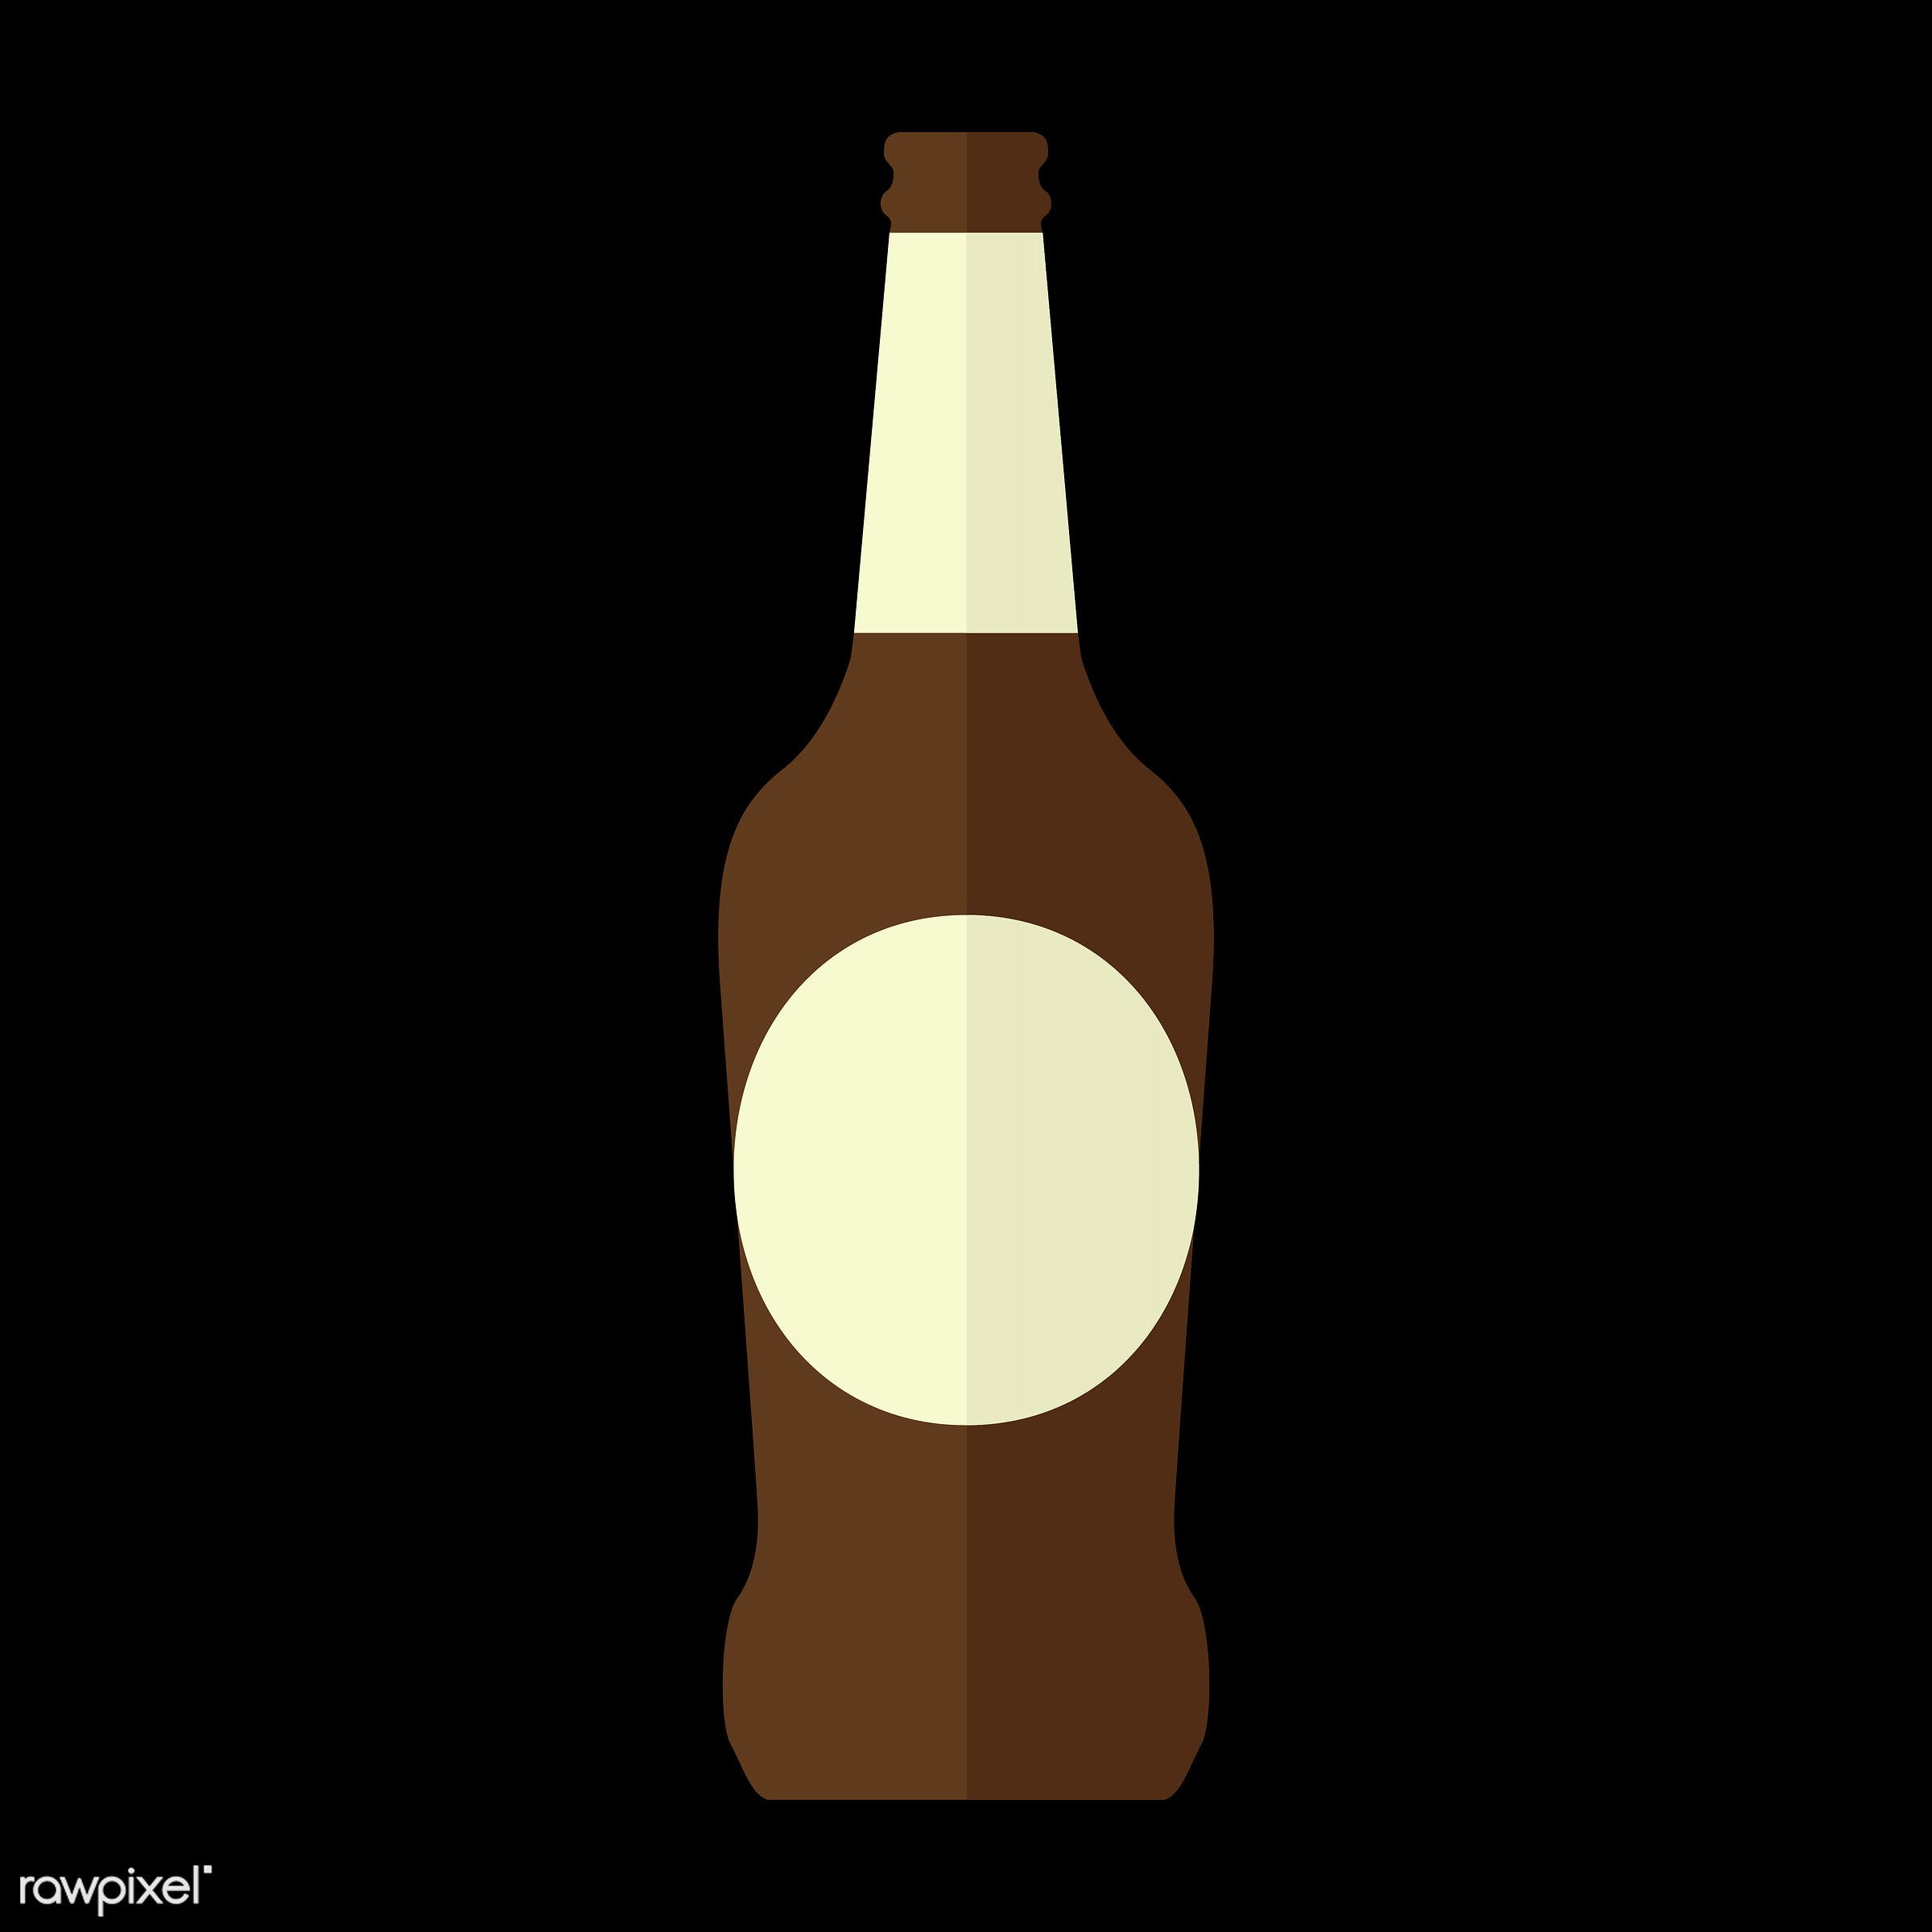 vector, graphic, illustration, icon, symbol, colorful, cute, drink, beverage, water, beer, beer bottle, glass bottle